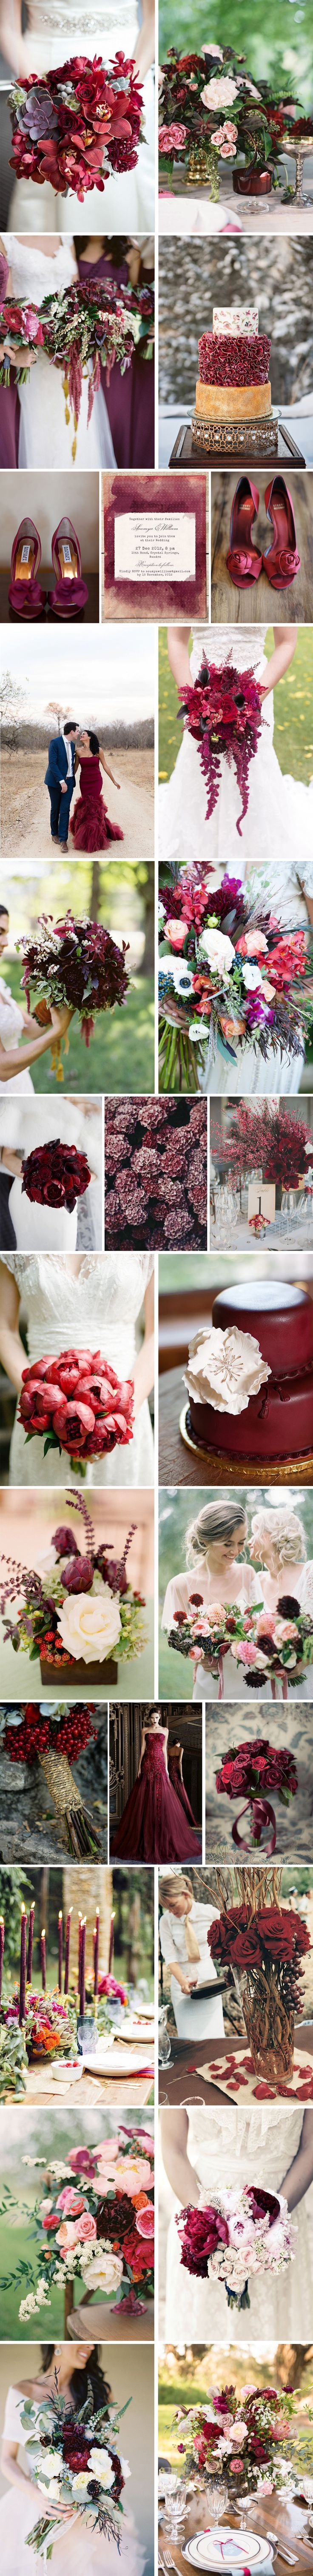 35 {Aubergine and Marsala} Classic Fall Wedding Color Ideas | http://www.deerpearlflowers.com/35-aubergine-marsala-classic-fall-wedding-color-ideas/